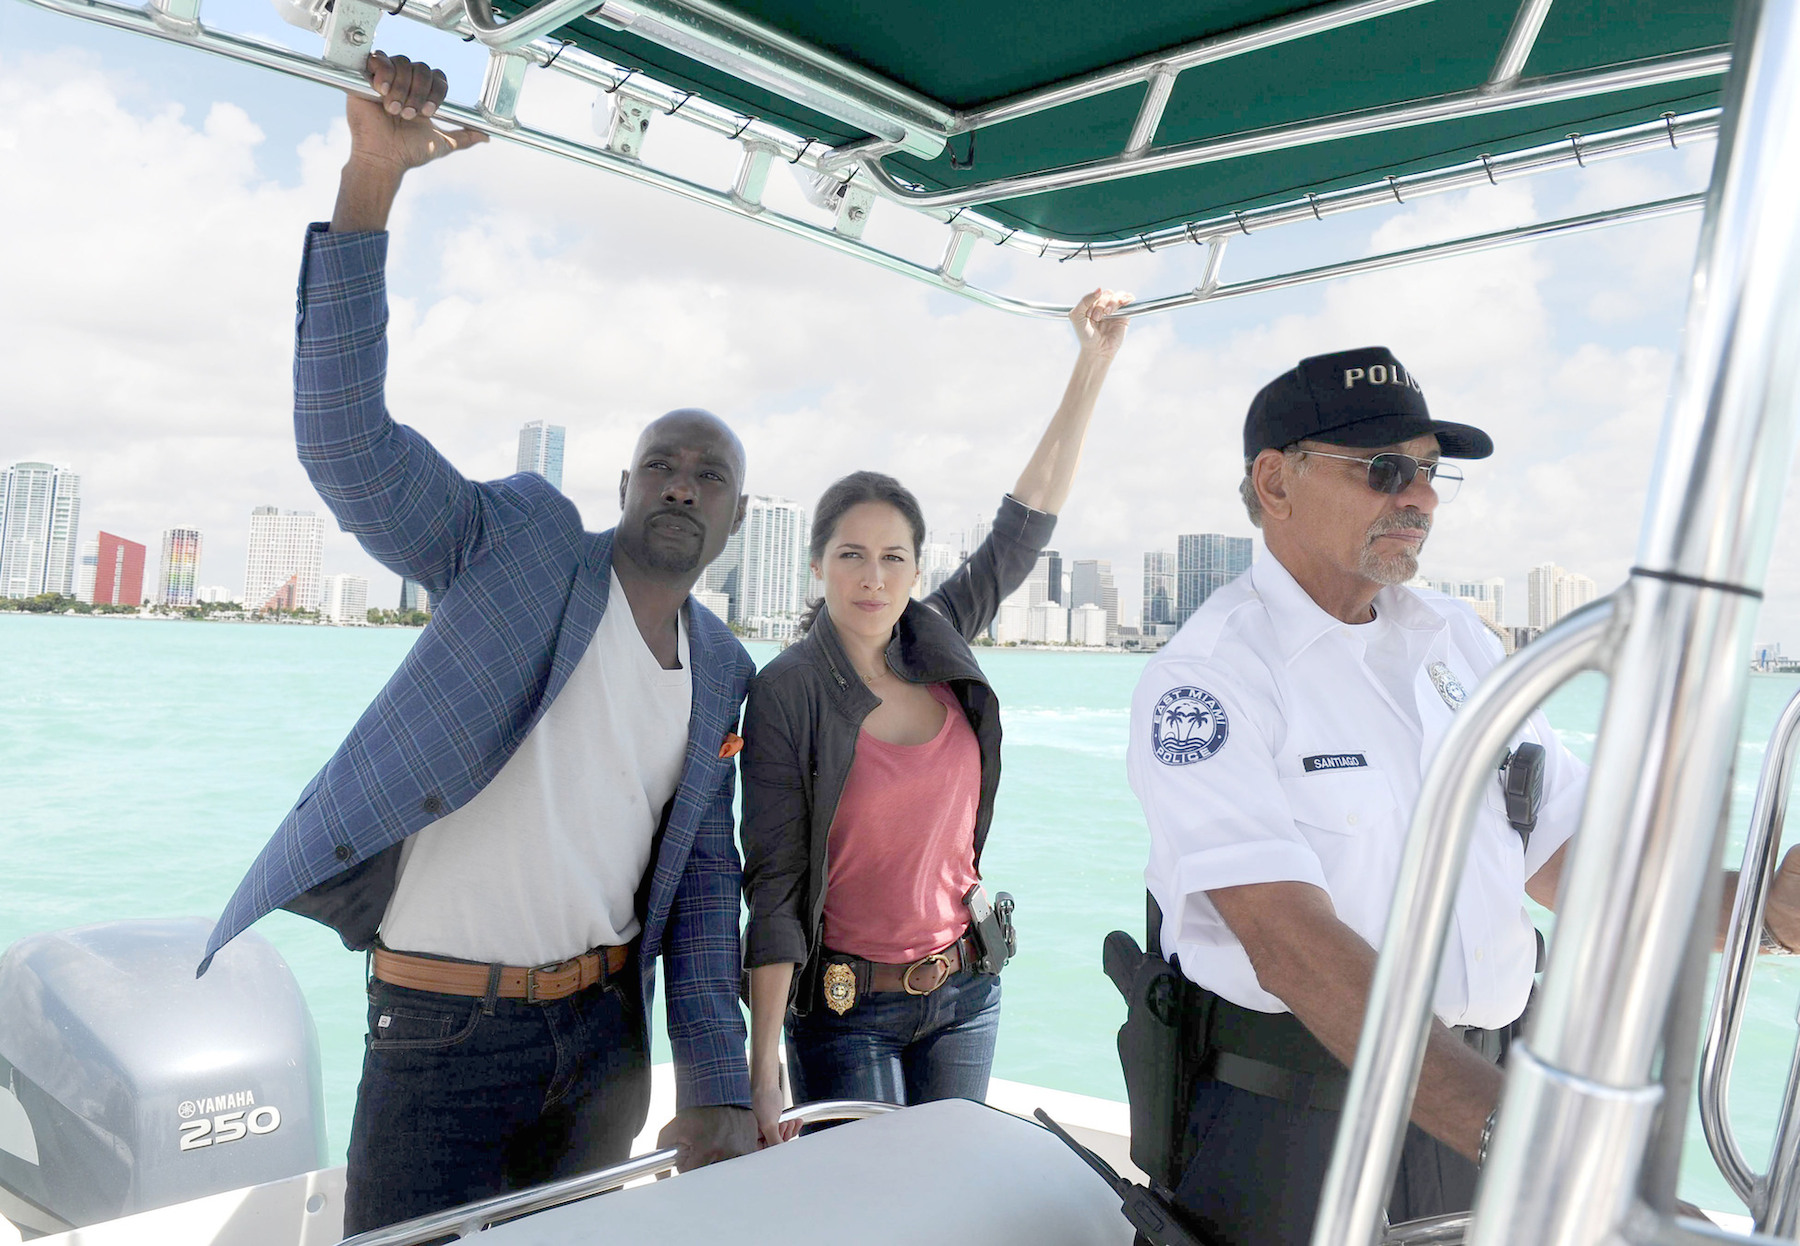 Jaina Lee Ortiz on How Her Homicide Detective Dad Helped Her Land the Lead Role in 'Rosewood'